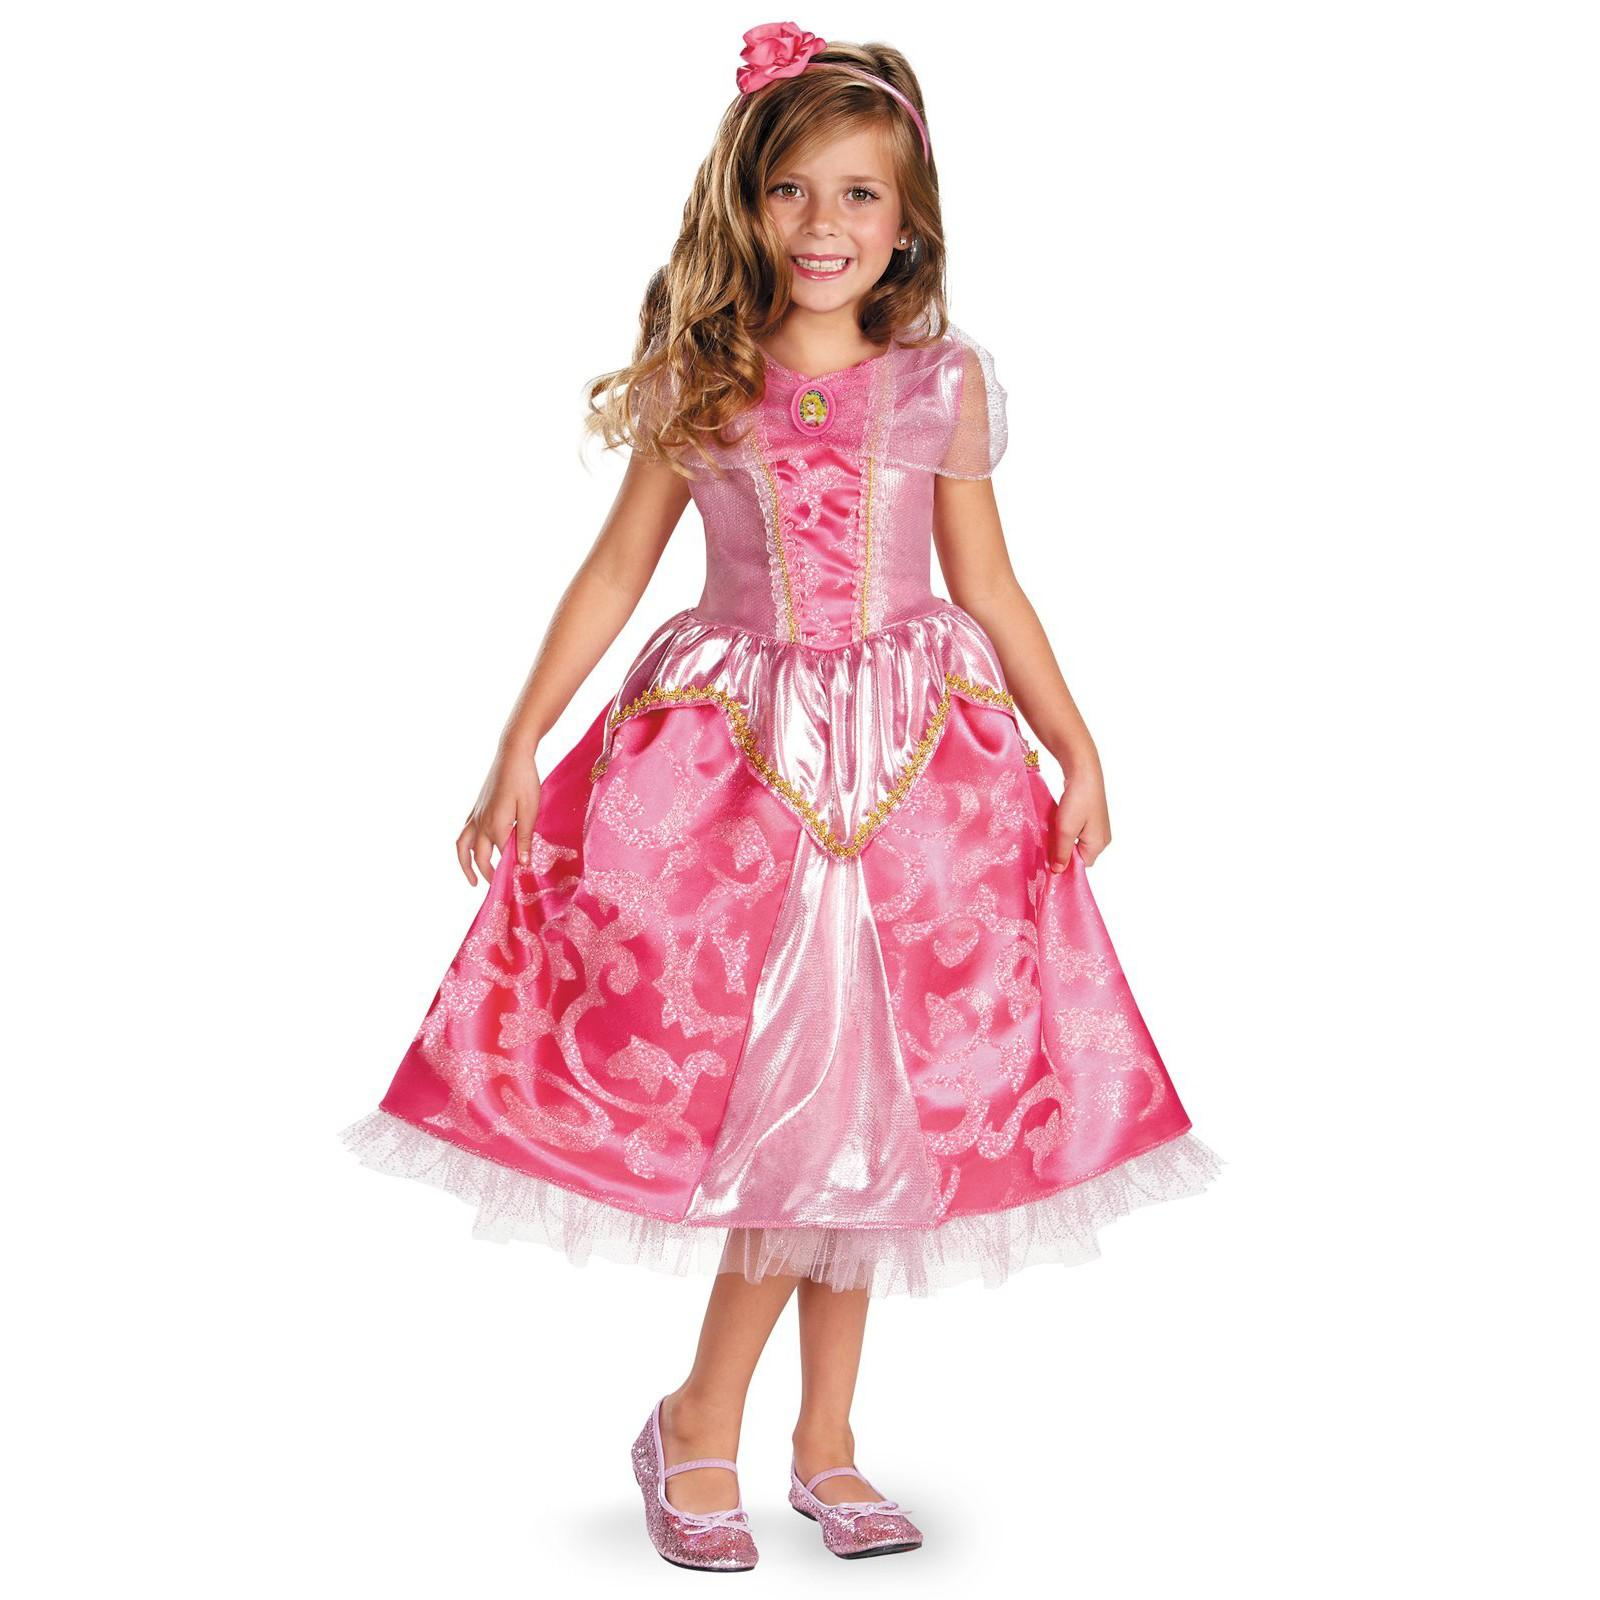 Disney Aurora Deluxe Toddler Costume - XS  sc 1 st  Walmart : aurora toddler costume  - Germanpascual.Com